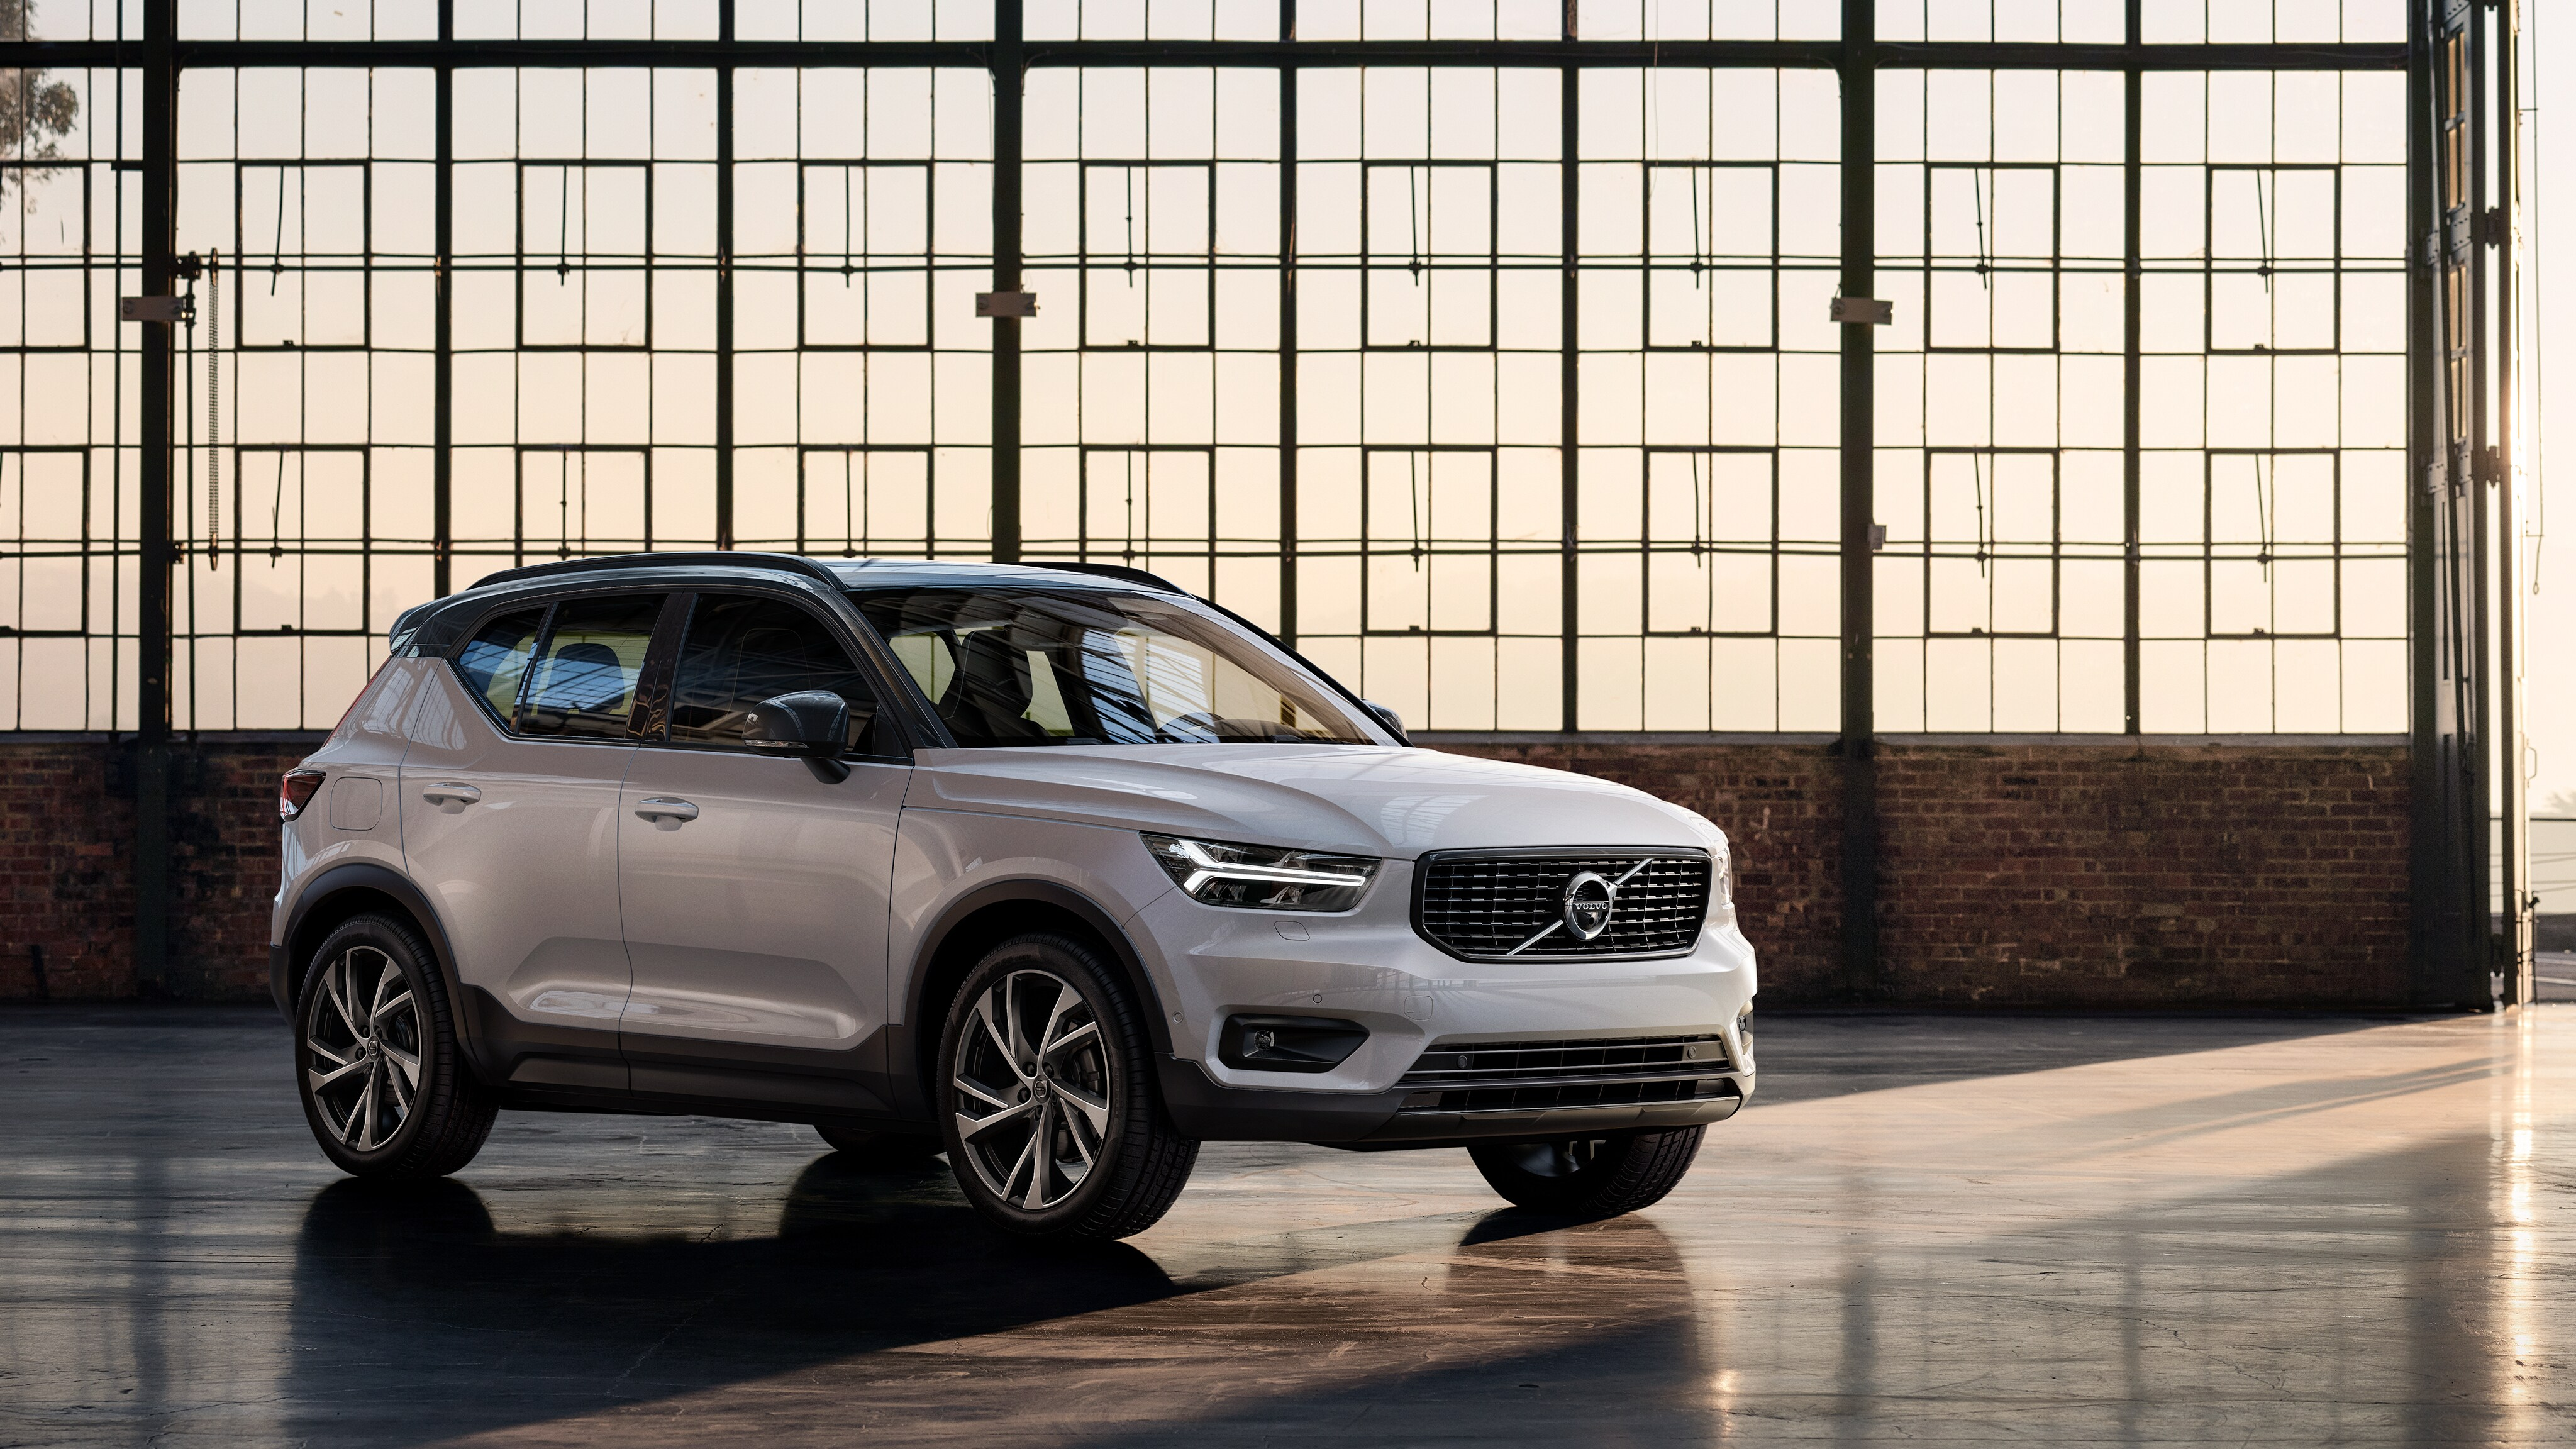 Volvo XC40 To Be Launched In June, Bookings Started In Few Dealerships